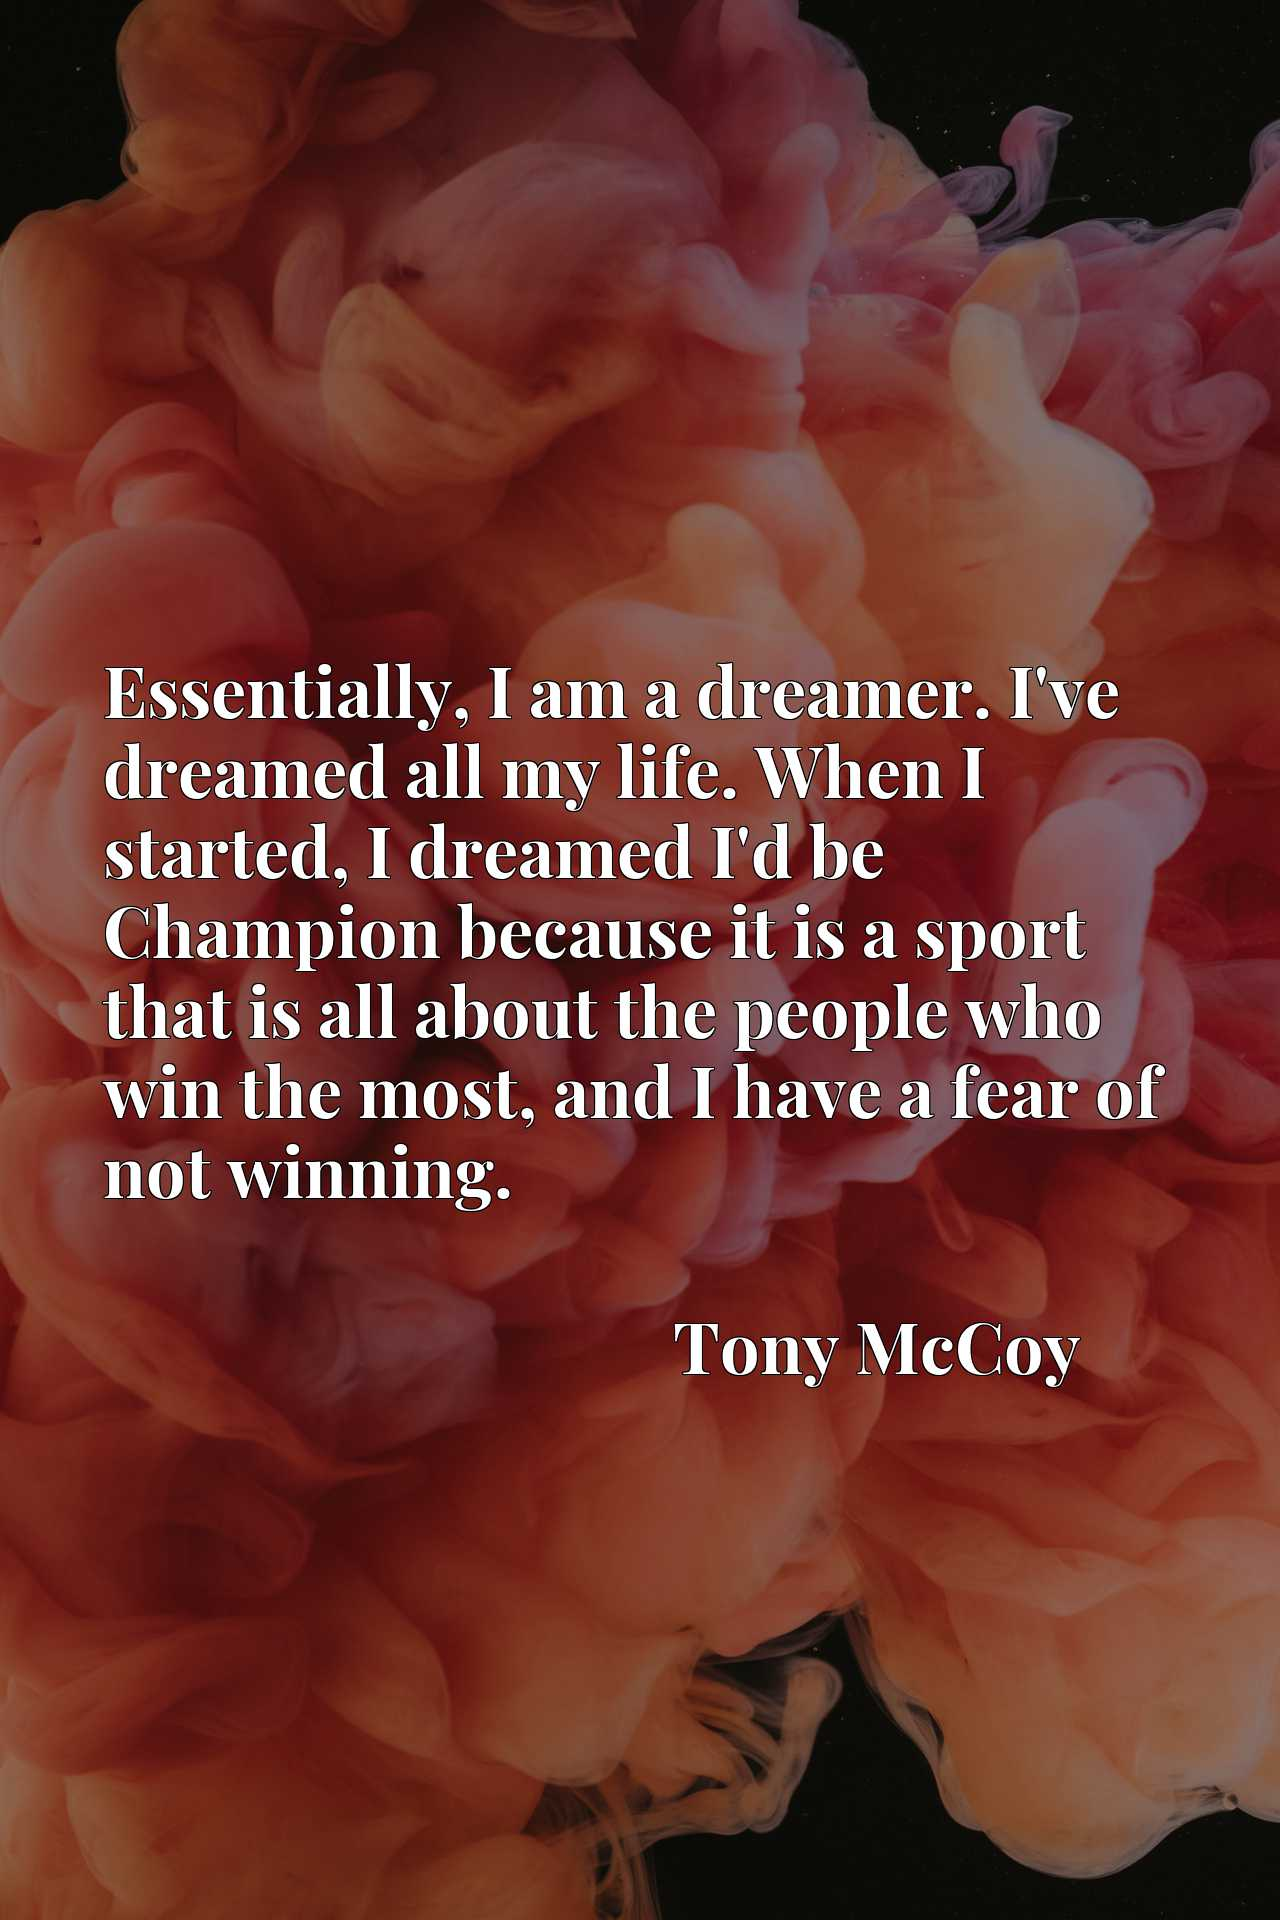 Essentially, I am a dreamer. I've dreamed all my life. When I started, I dreamed I'd be Champion because it is a sport that is all about the people who win the most, and I have a fear of not winning.